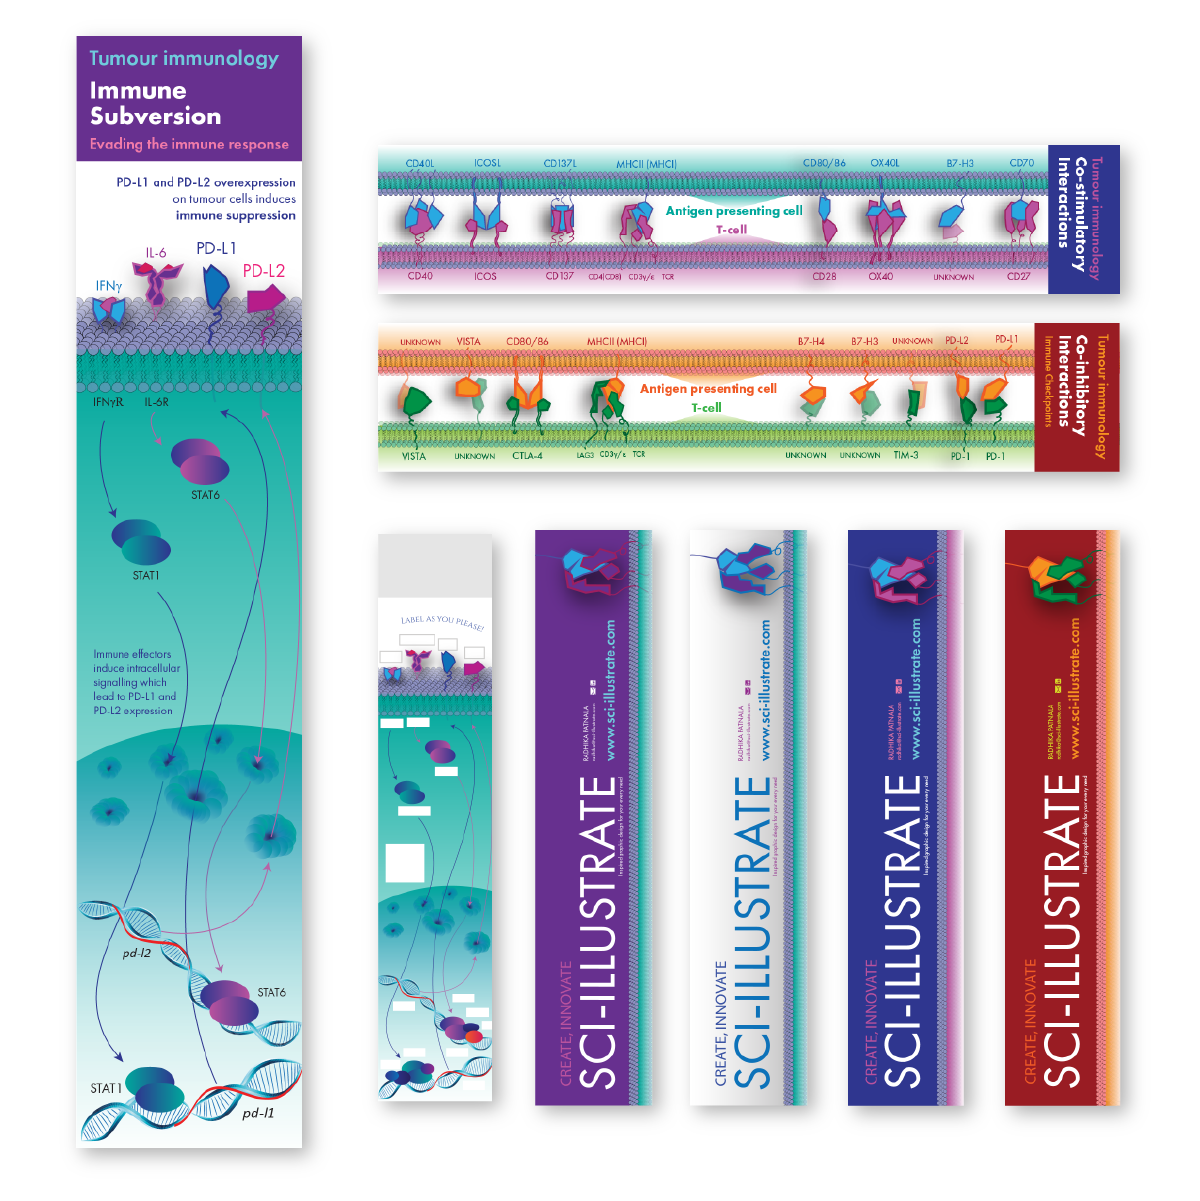 The Tumour Immunology Series -